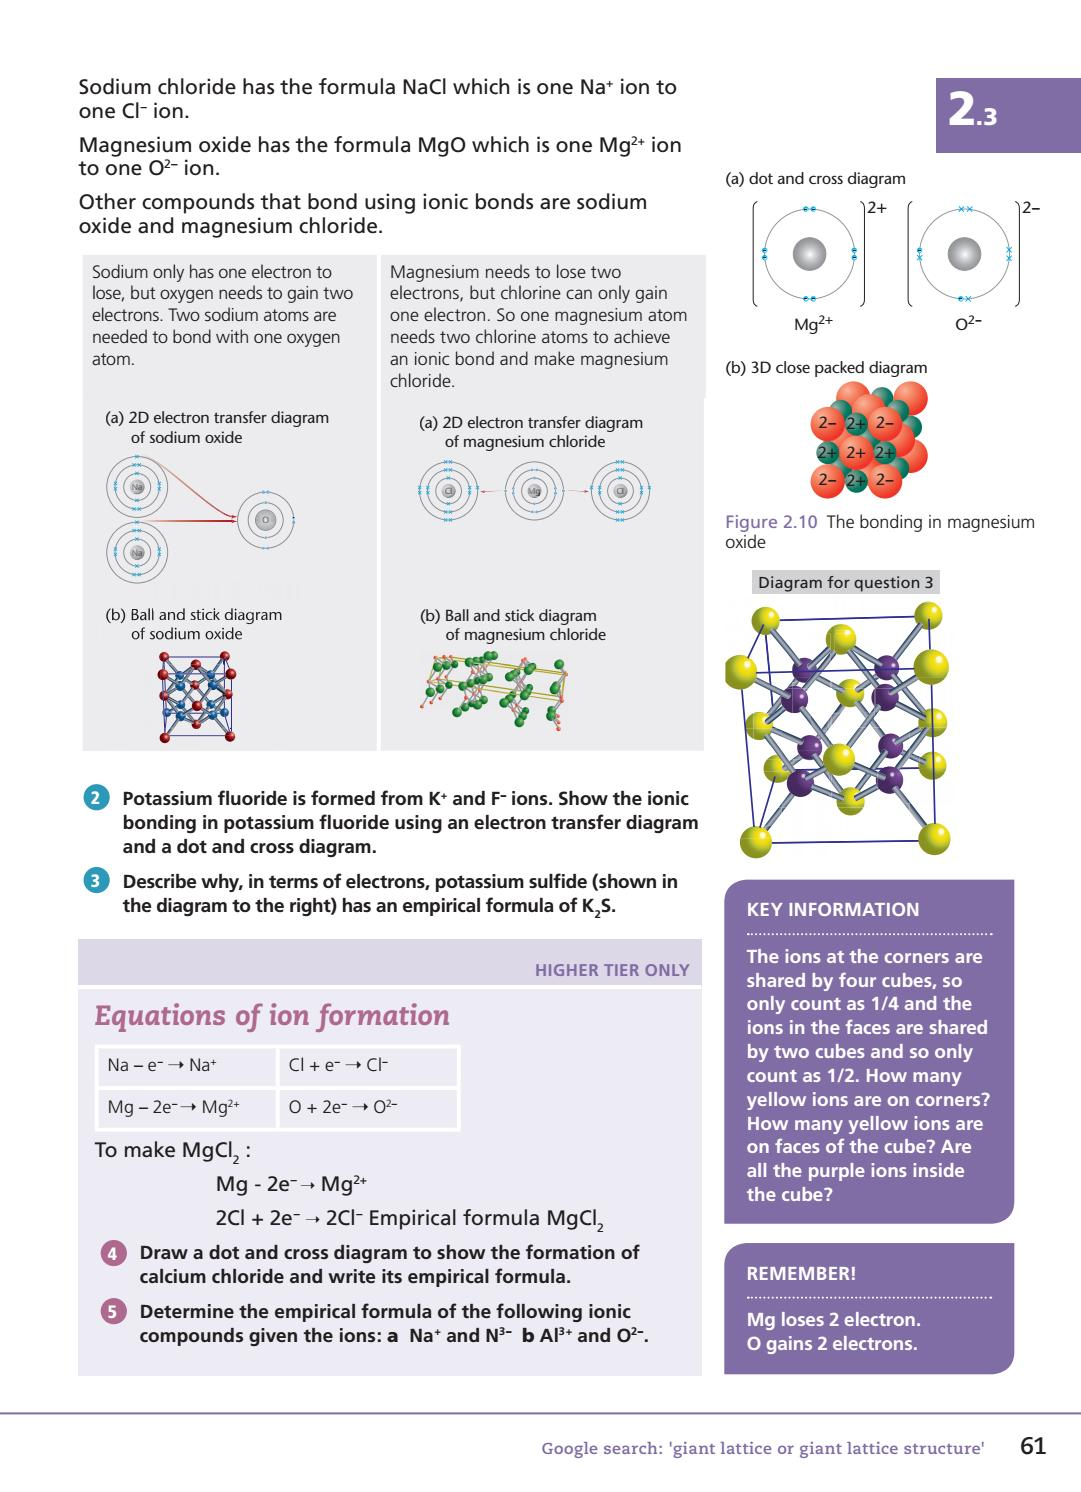 Aqa gcse 9 1 chemistry for combined science trilogy by collins aqa gcse 9 1 chemistry for combined science trilogy by collins issuu pooptronica